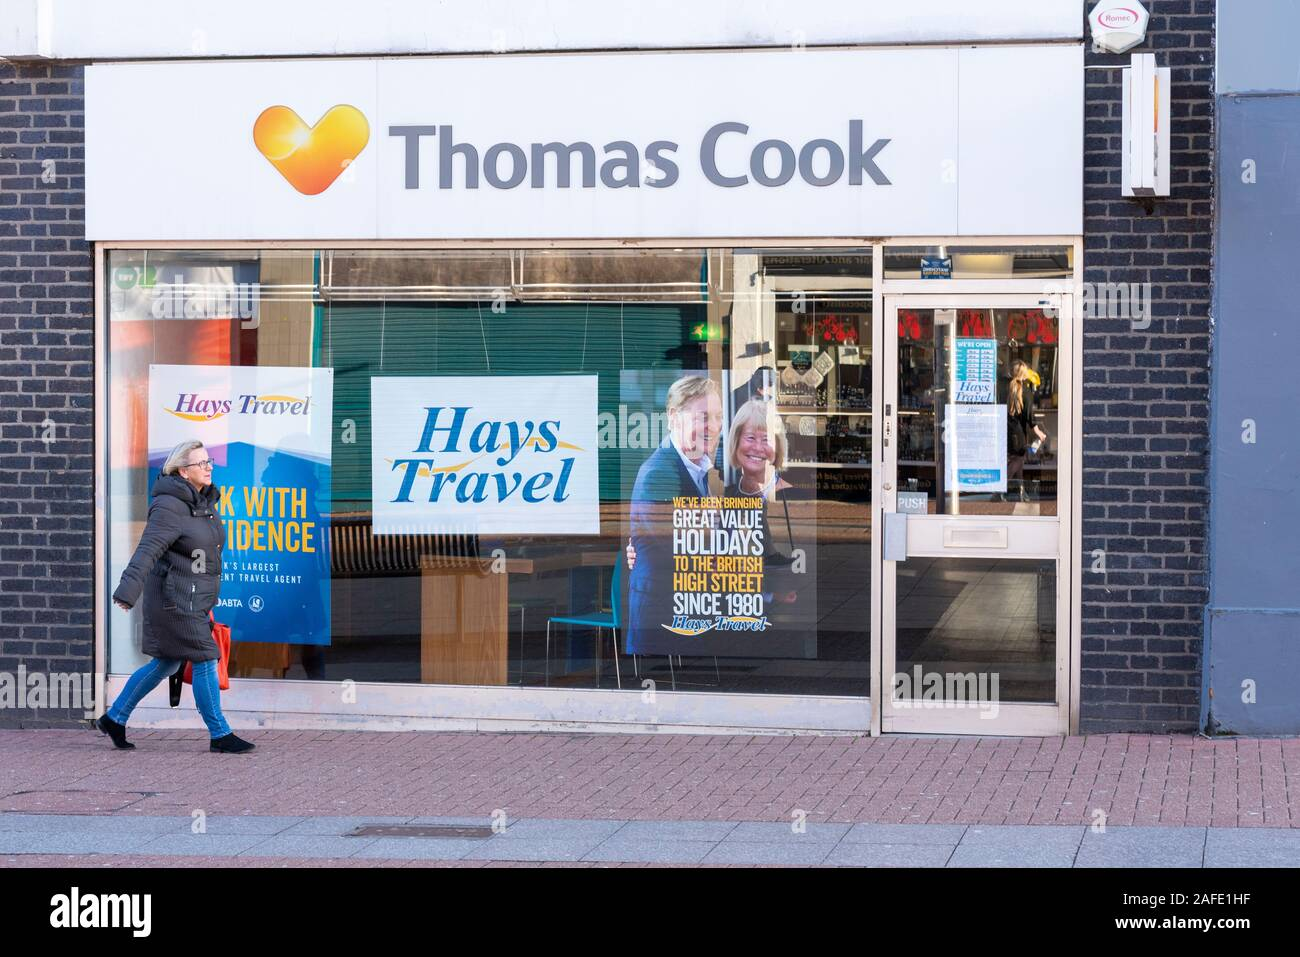 hays-travel-high-street-branch-taking-over-after-collapse-of-travel-business-thomas-cook-branches-high-street-southend-on-sea-essex-uk-2AFE1HF.jpg